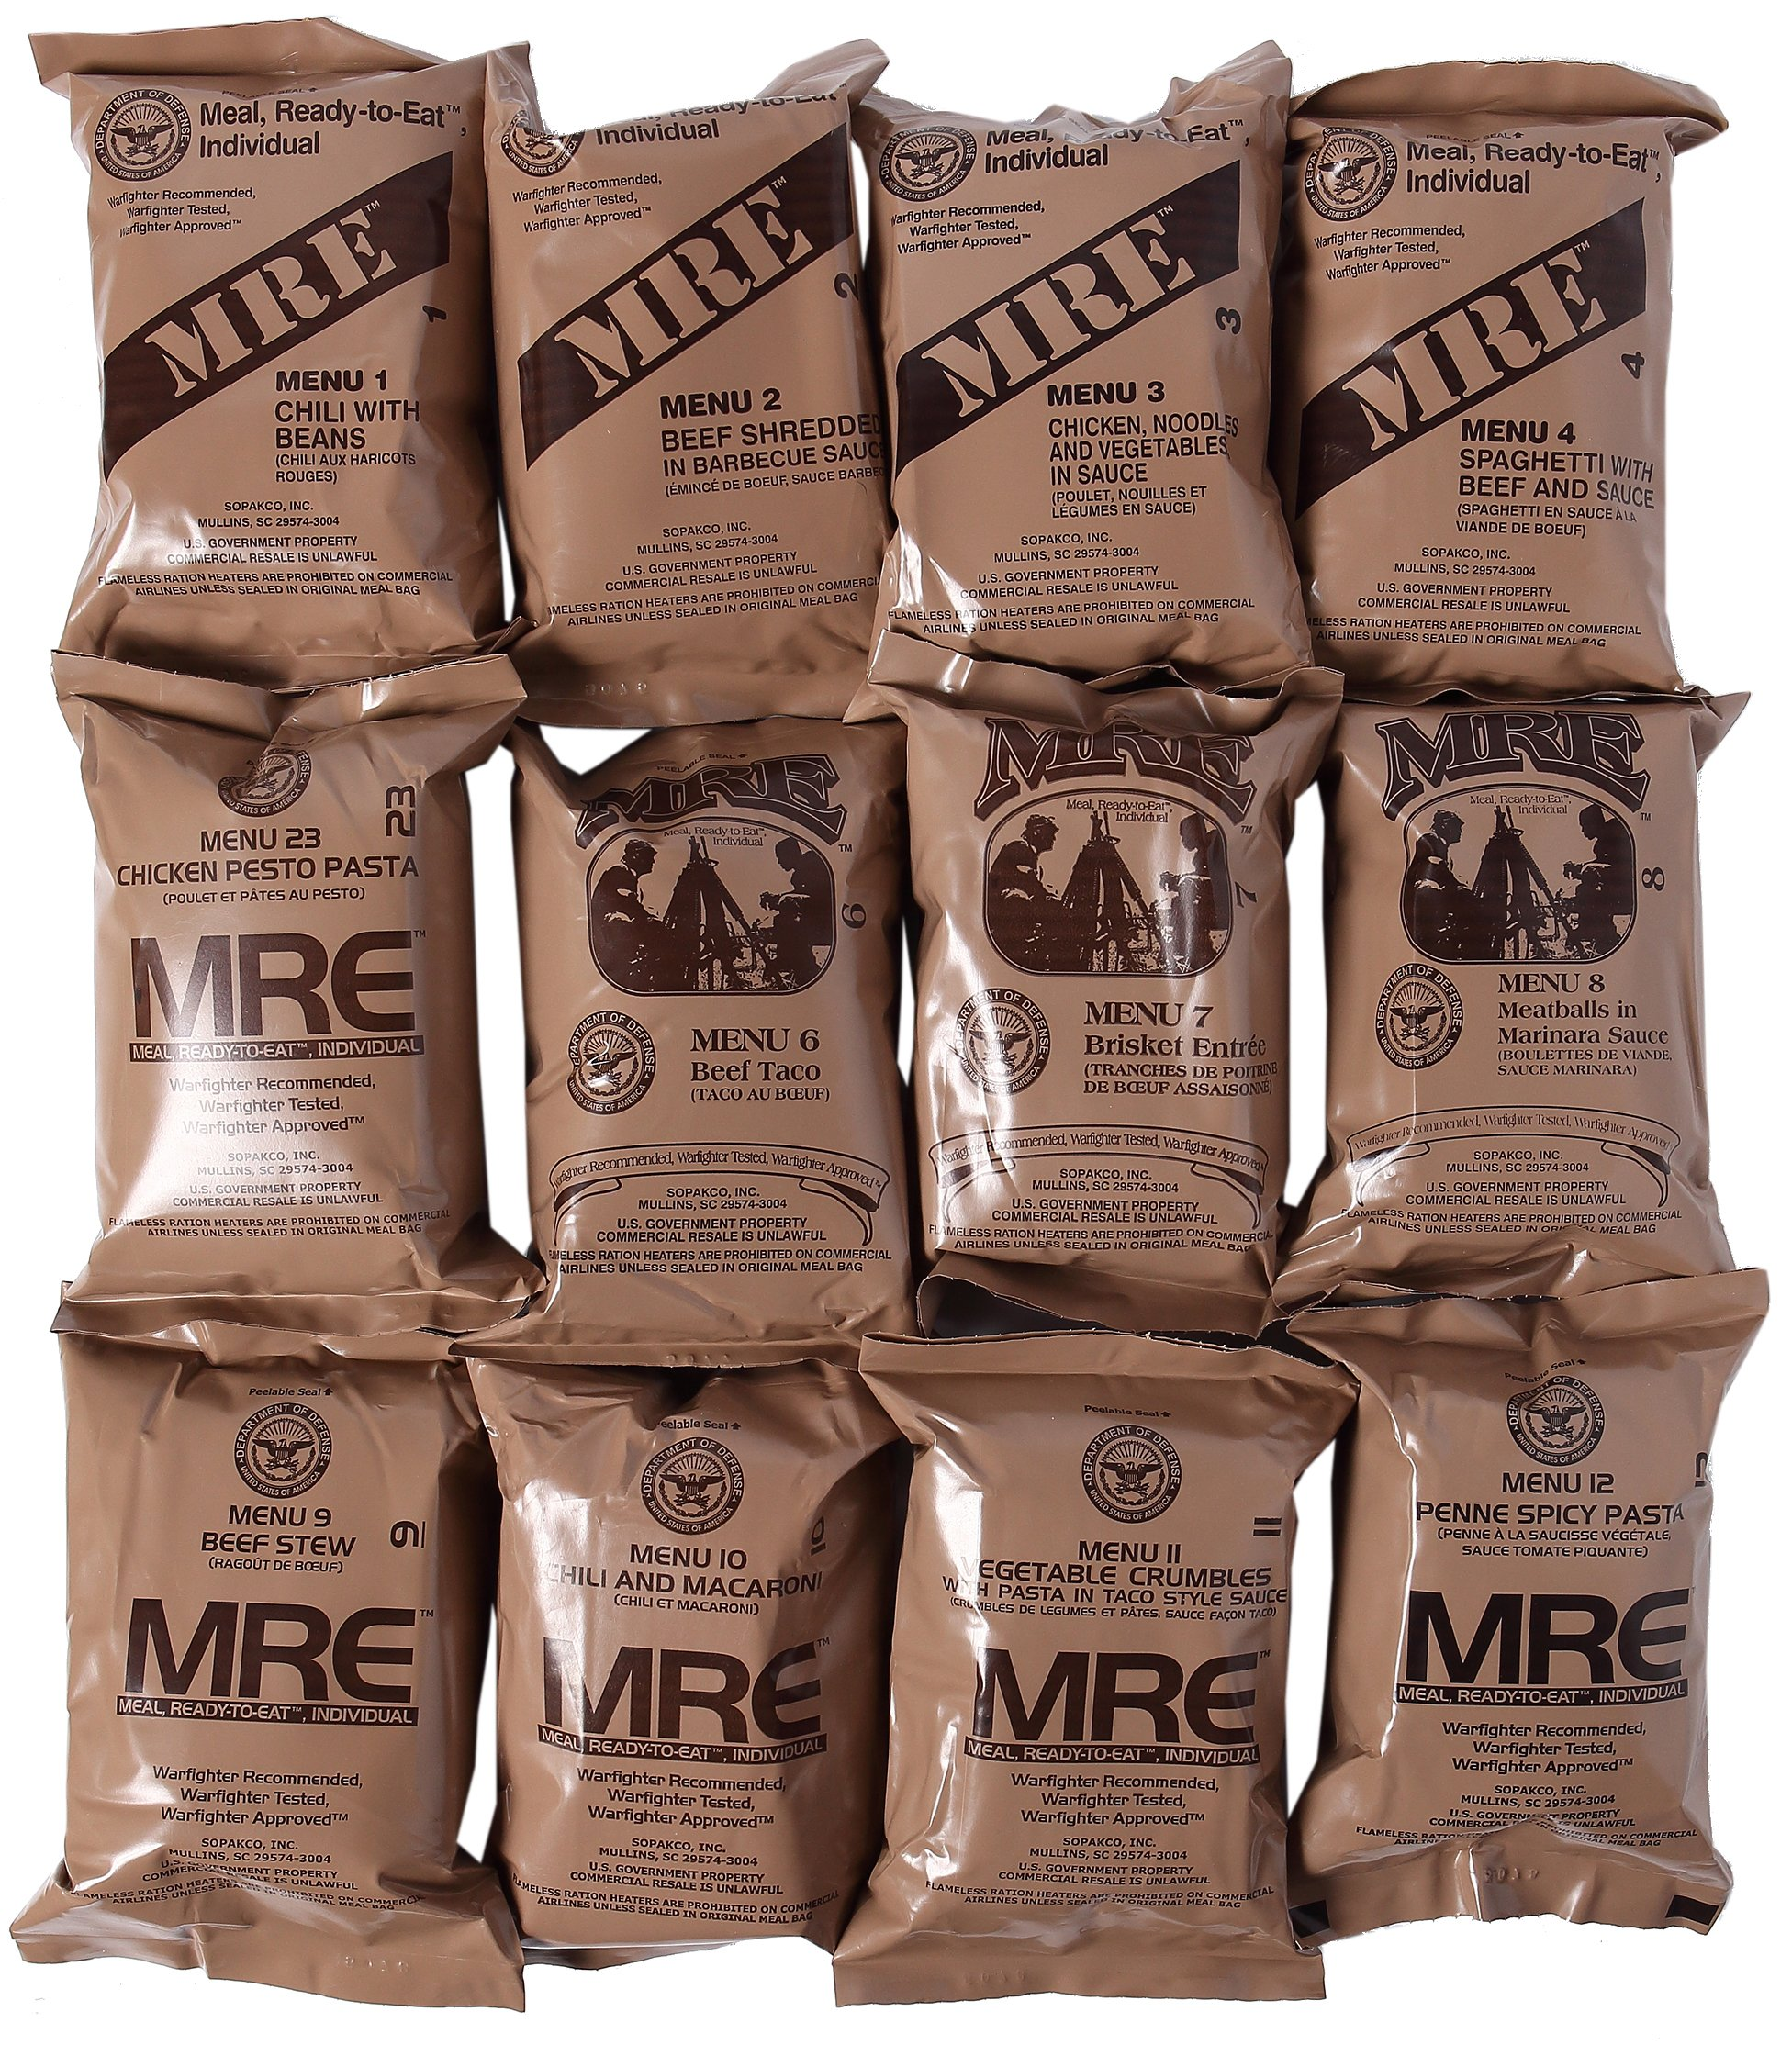 Western Frontier MRE 2019 Inspection Date Case A and Case B Bundle, 24 Meals Packed in 2016. Military Surplus Meal Ready to Eat. by Western Frontier (Image #2)